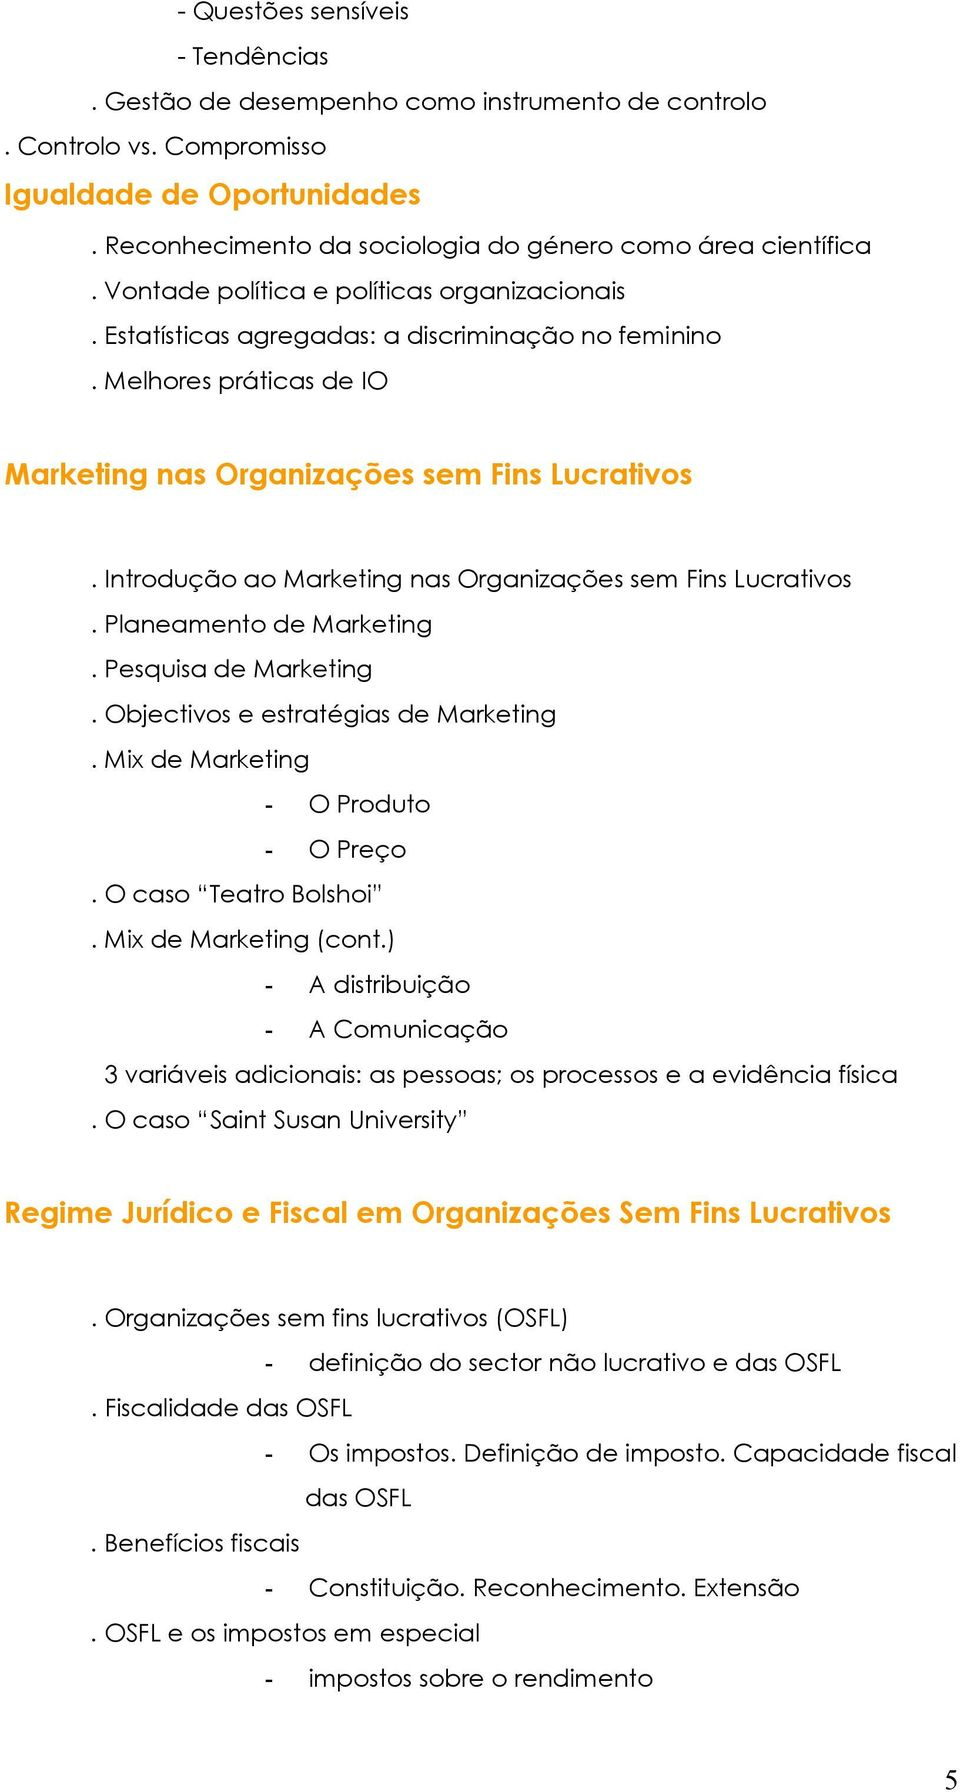 Introdução ao Marketing nas Organizações sem Fins Lucrativos. Planeamento de Marketing. Pesquisa de Marketing. Objectivos e estratégias de Marketing. Mix de Marketing - O Produto - O Preço.